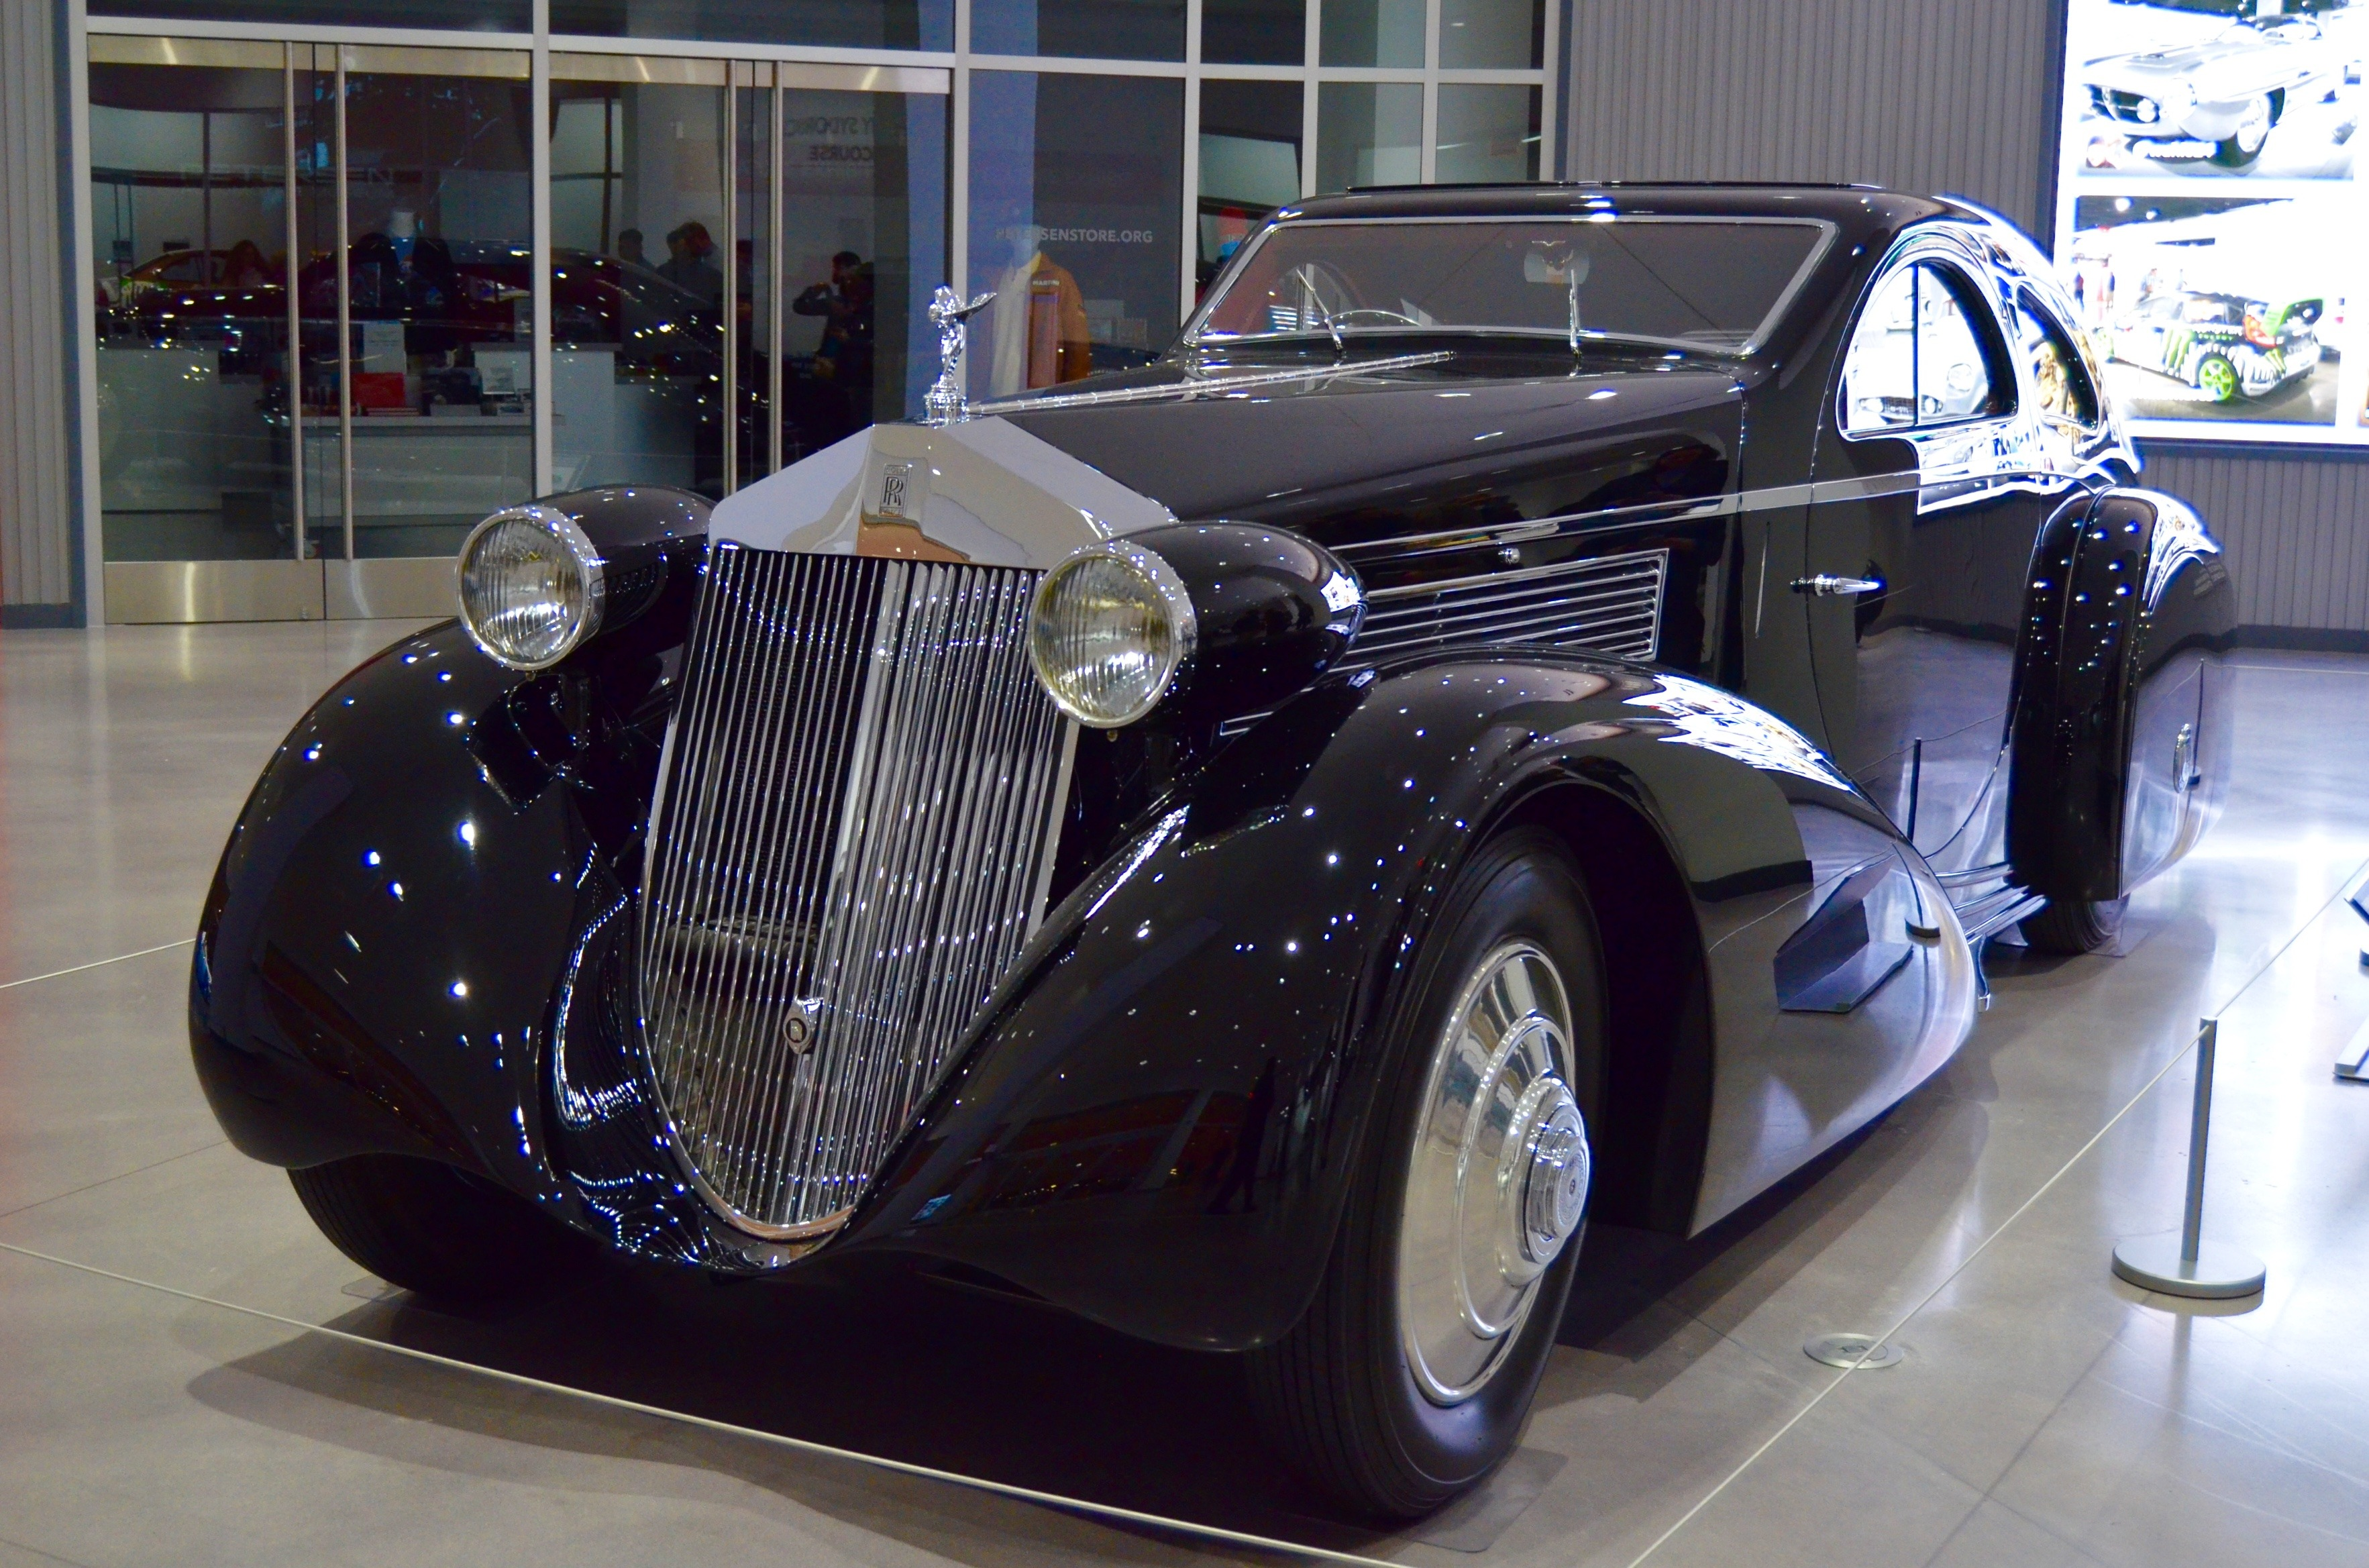 Forum on this topic: Stars Of The Pertersen Automotive Museum, stars-of-the-pertersen-automotive-museum/